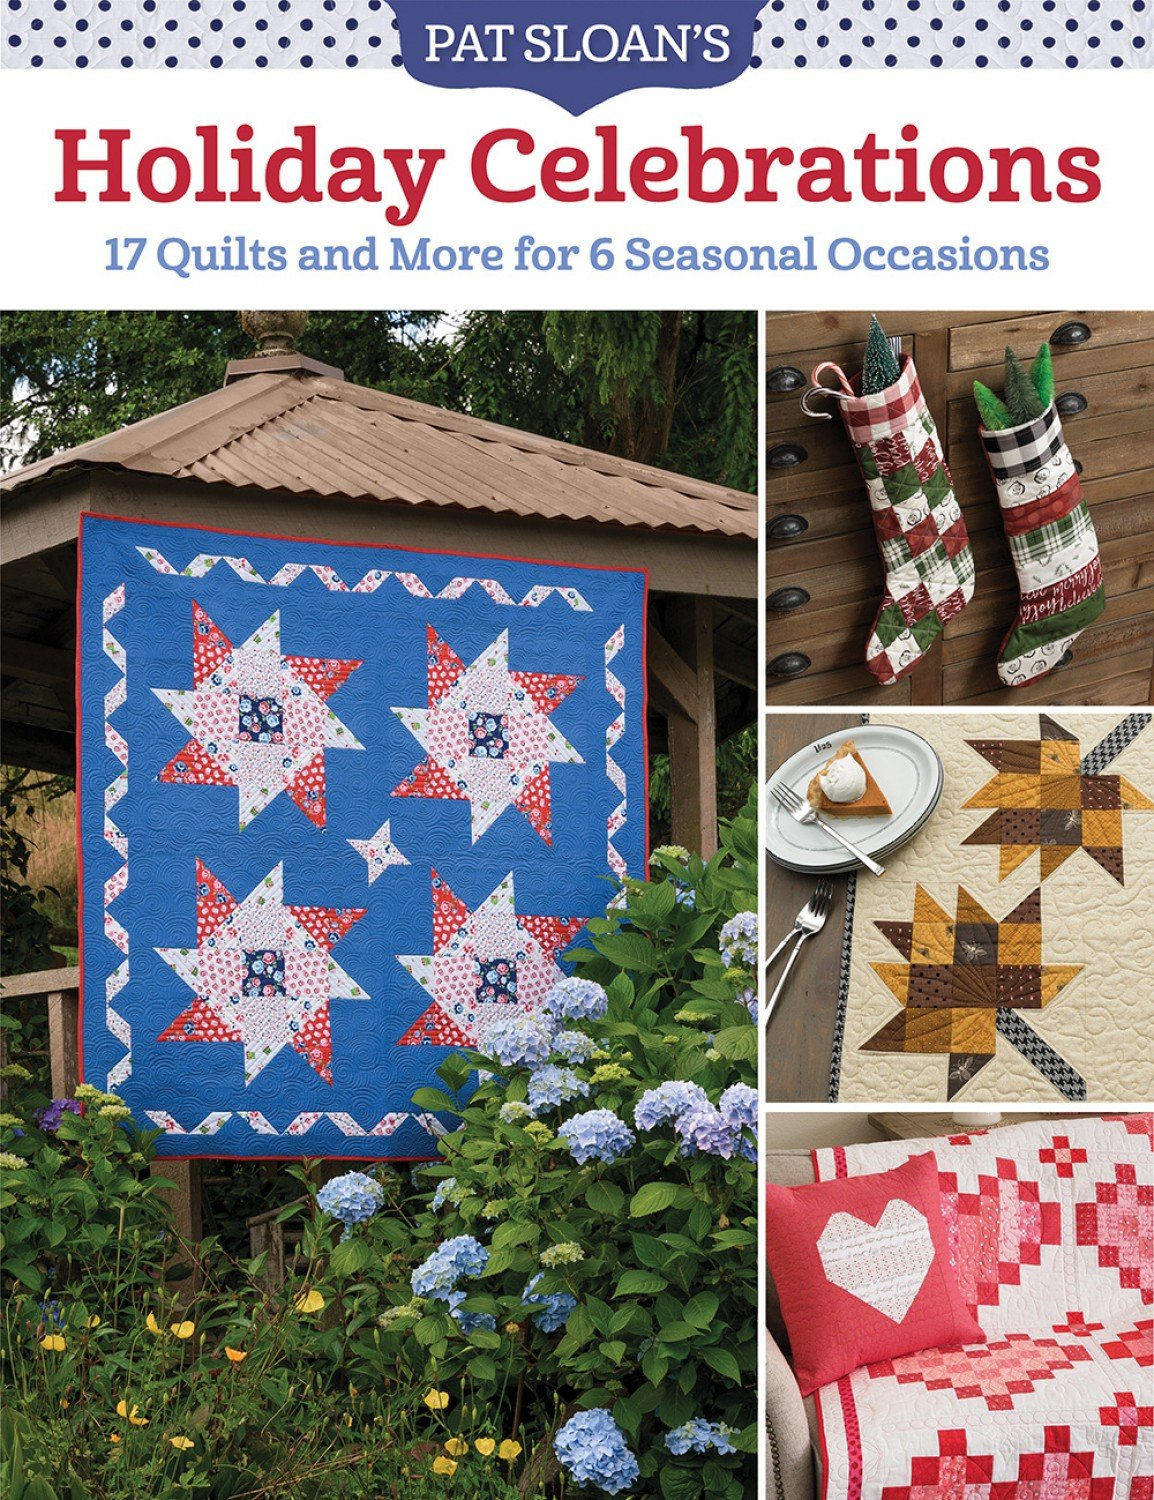 Pat Sloan's Holiday Celebrations ~ EXPECTED DATEAUG 11/21 ~